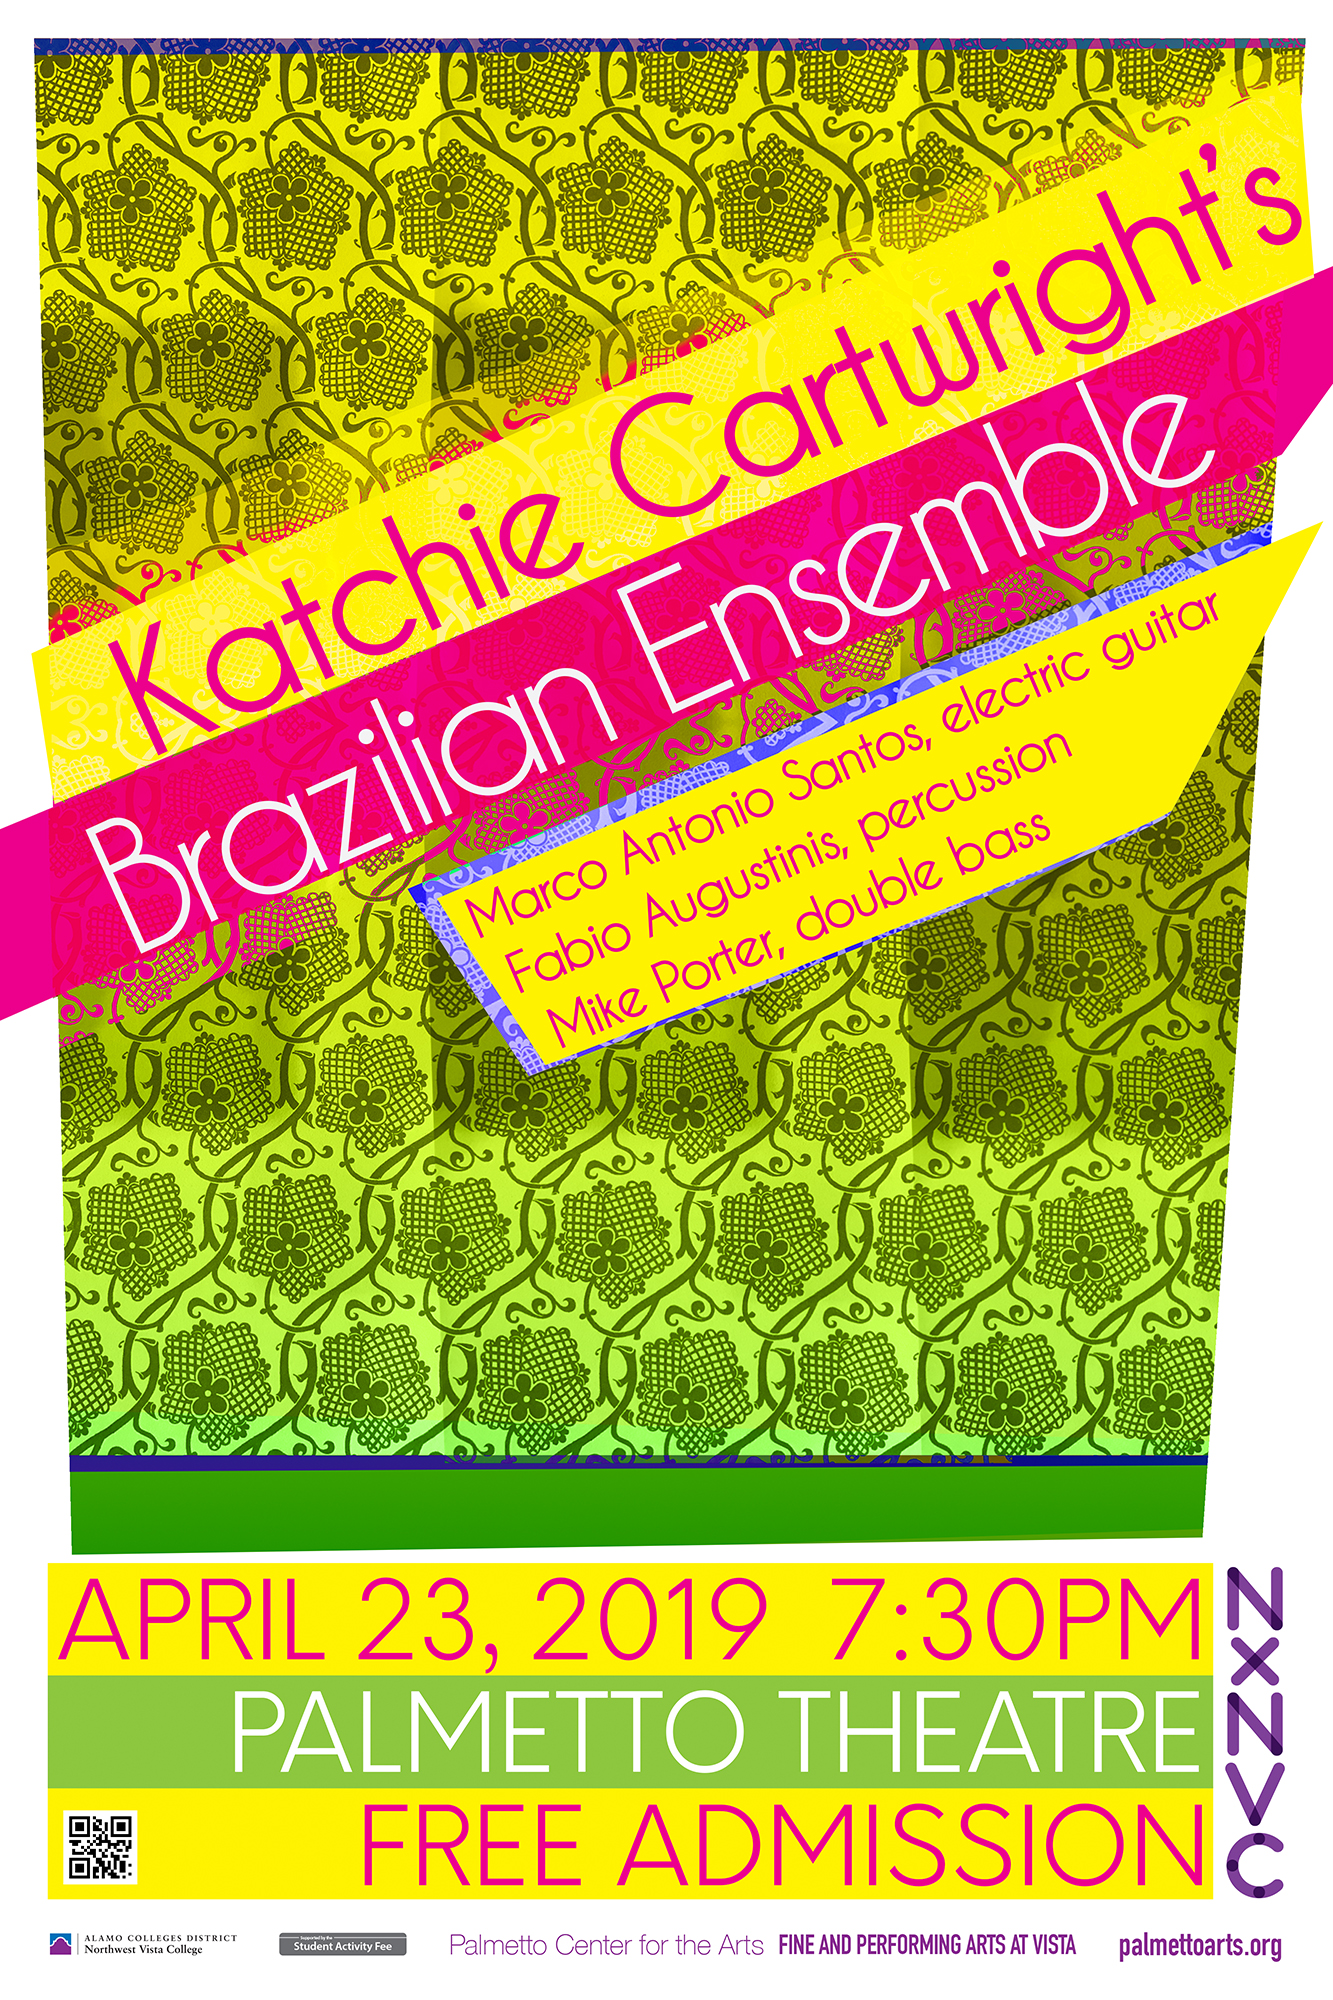 Katchie Cartwright's Brazilian Ensemble